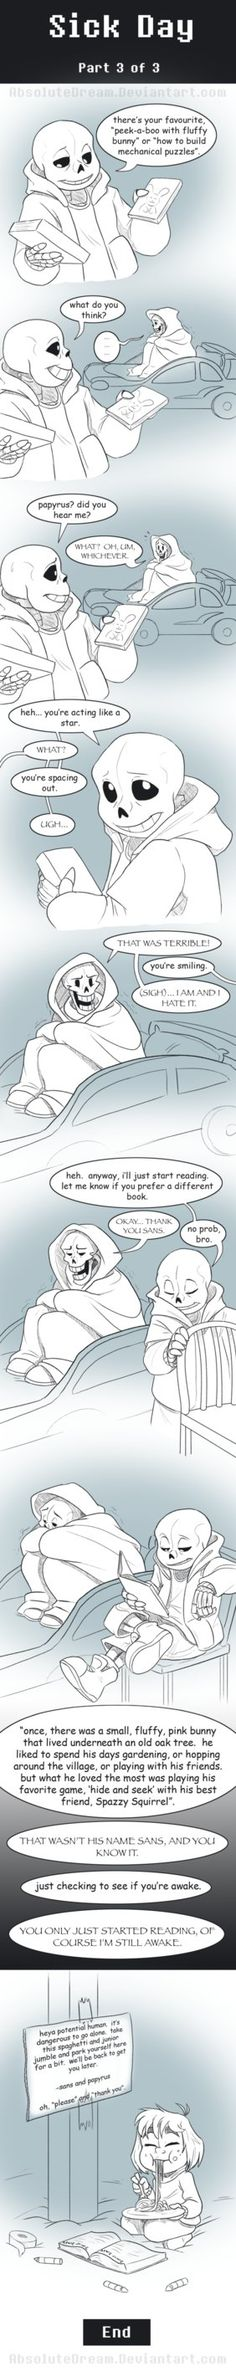 UT Comic: Sick Day Part3 by AbsoluteDream.deviantart.com on @DeviantArt